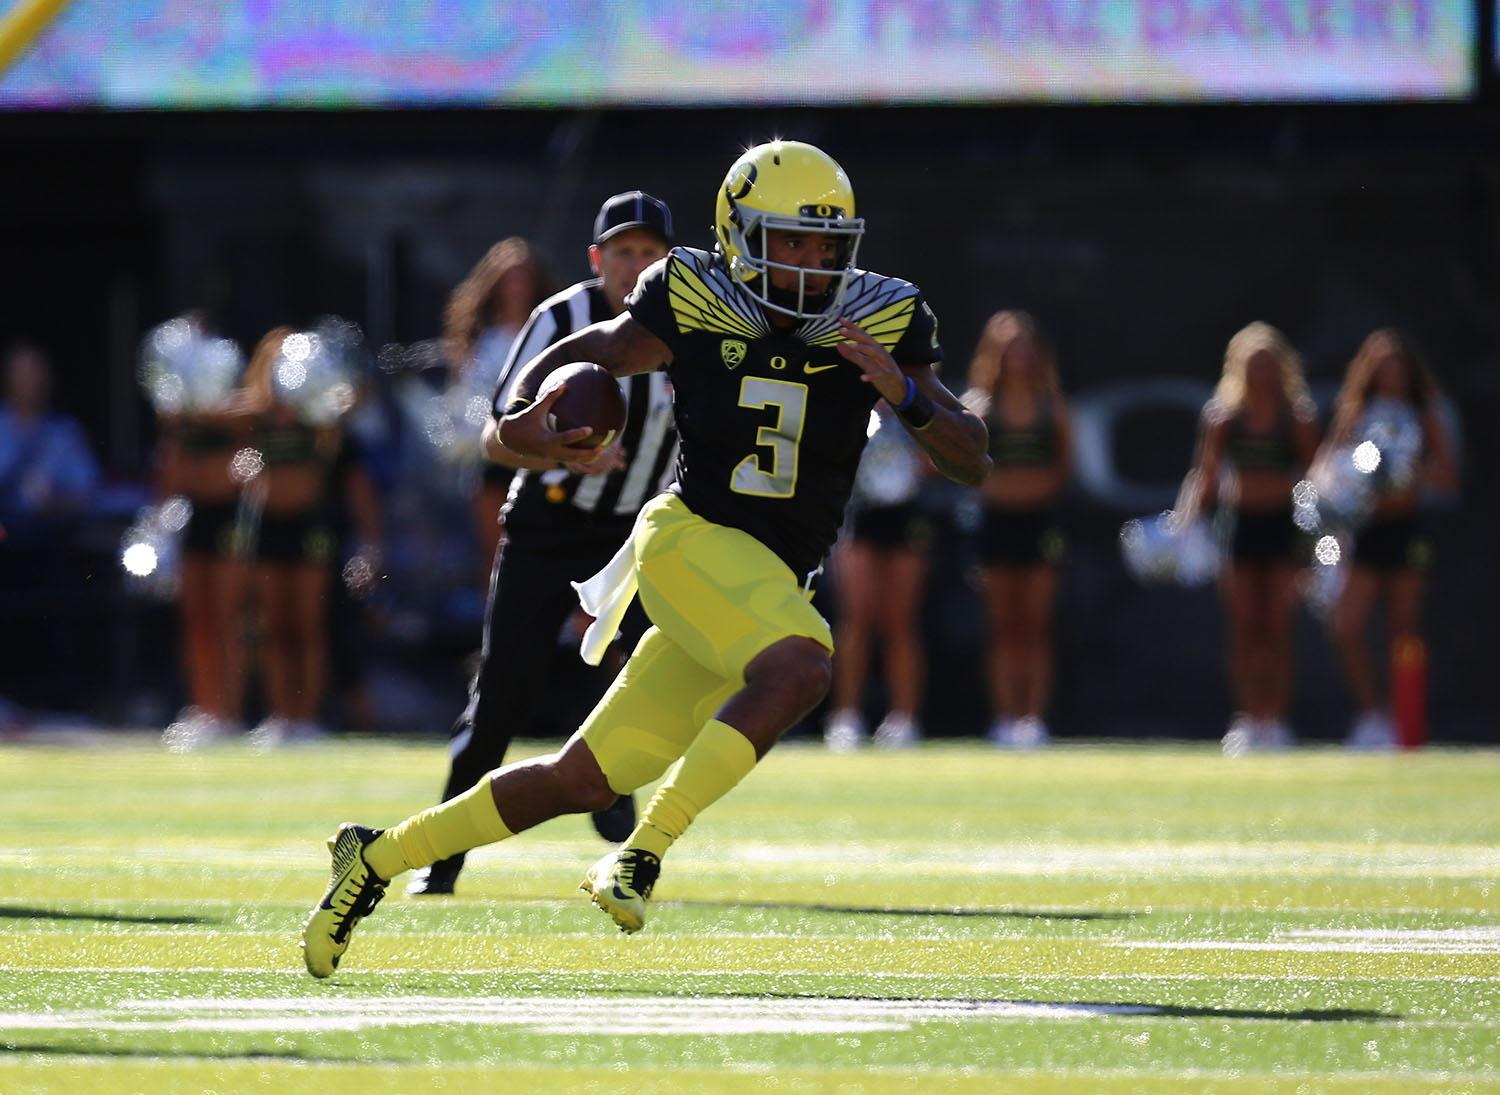 Oregon quarterback Vernon Adams Jr. (3) runs the ball during the first half of an NCAA college football game against Eastern Washington Saturday, Sept. 5, 2015, in Eugene, Ore.